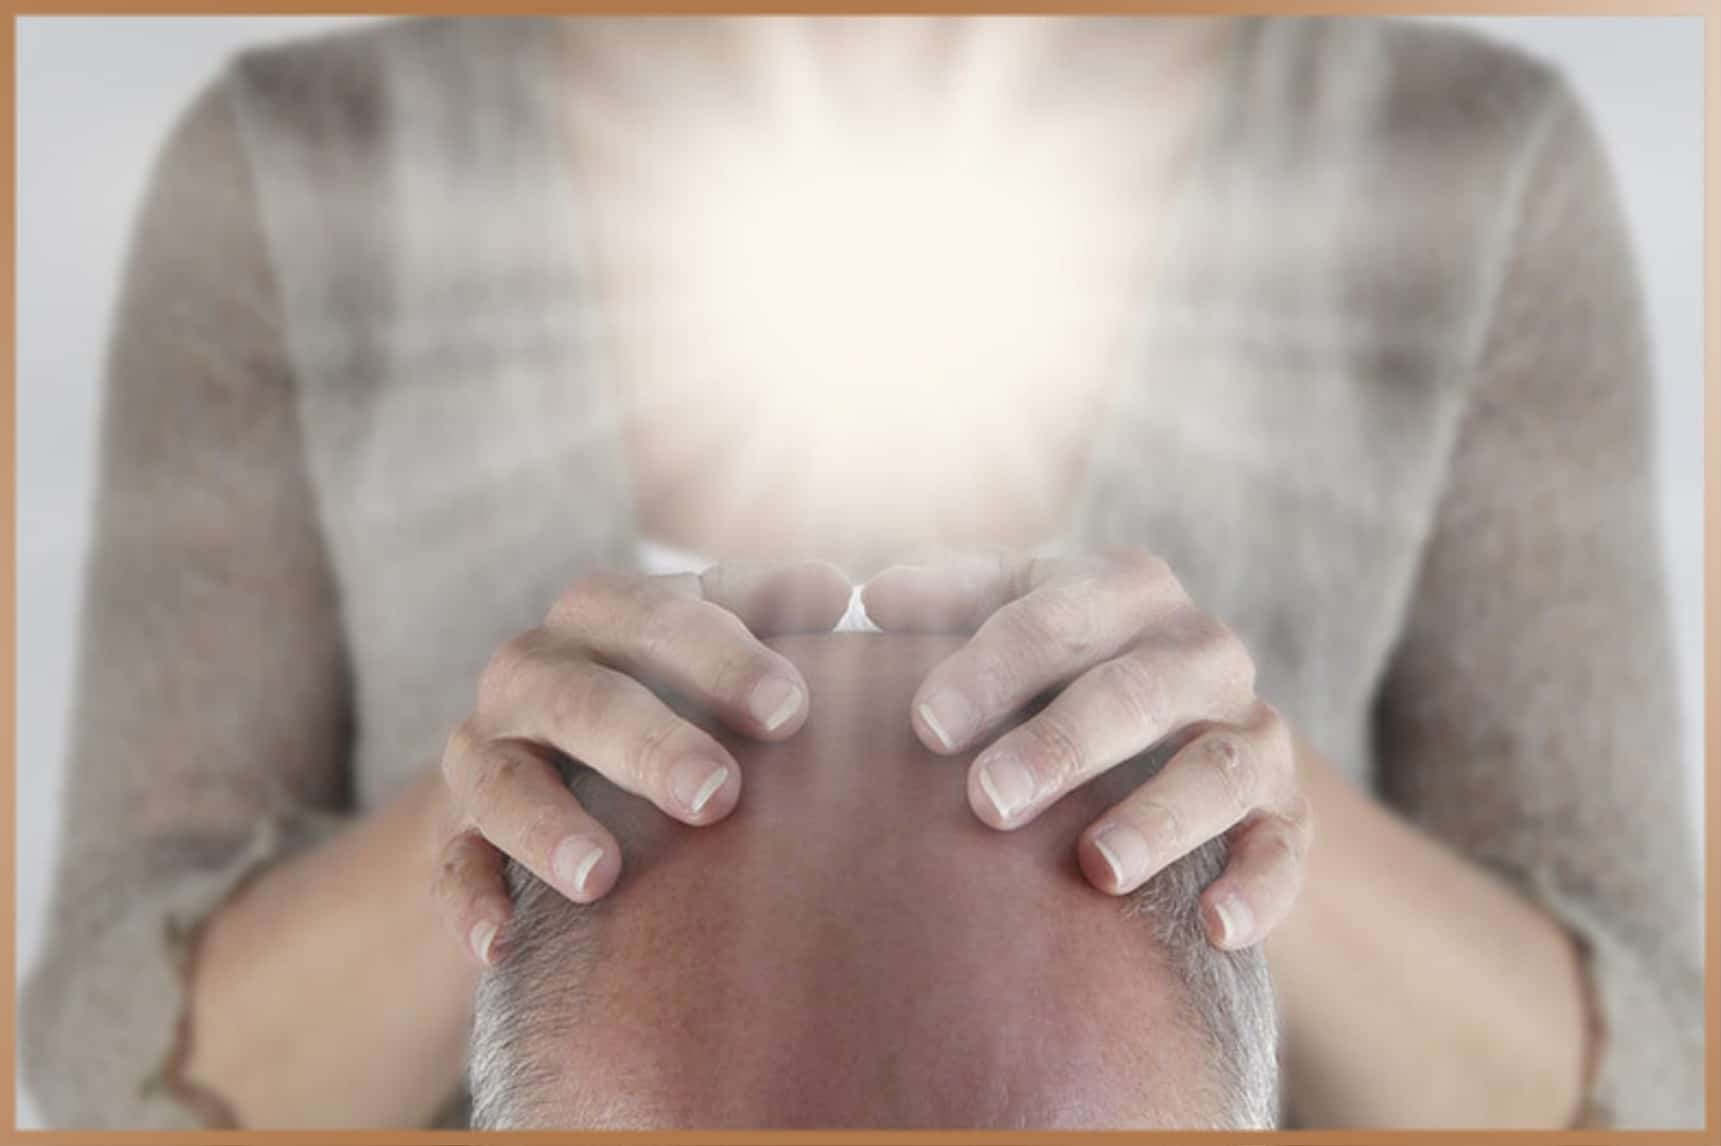 Woman gives Reiki energy healing to a man